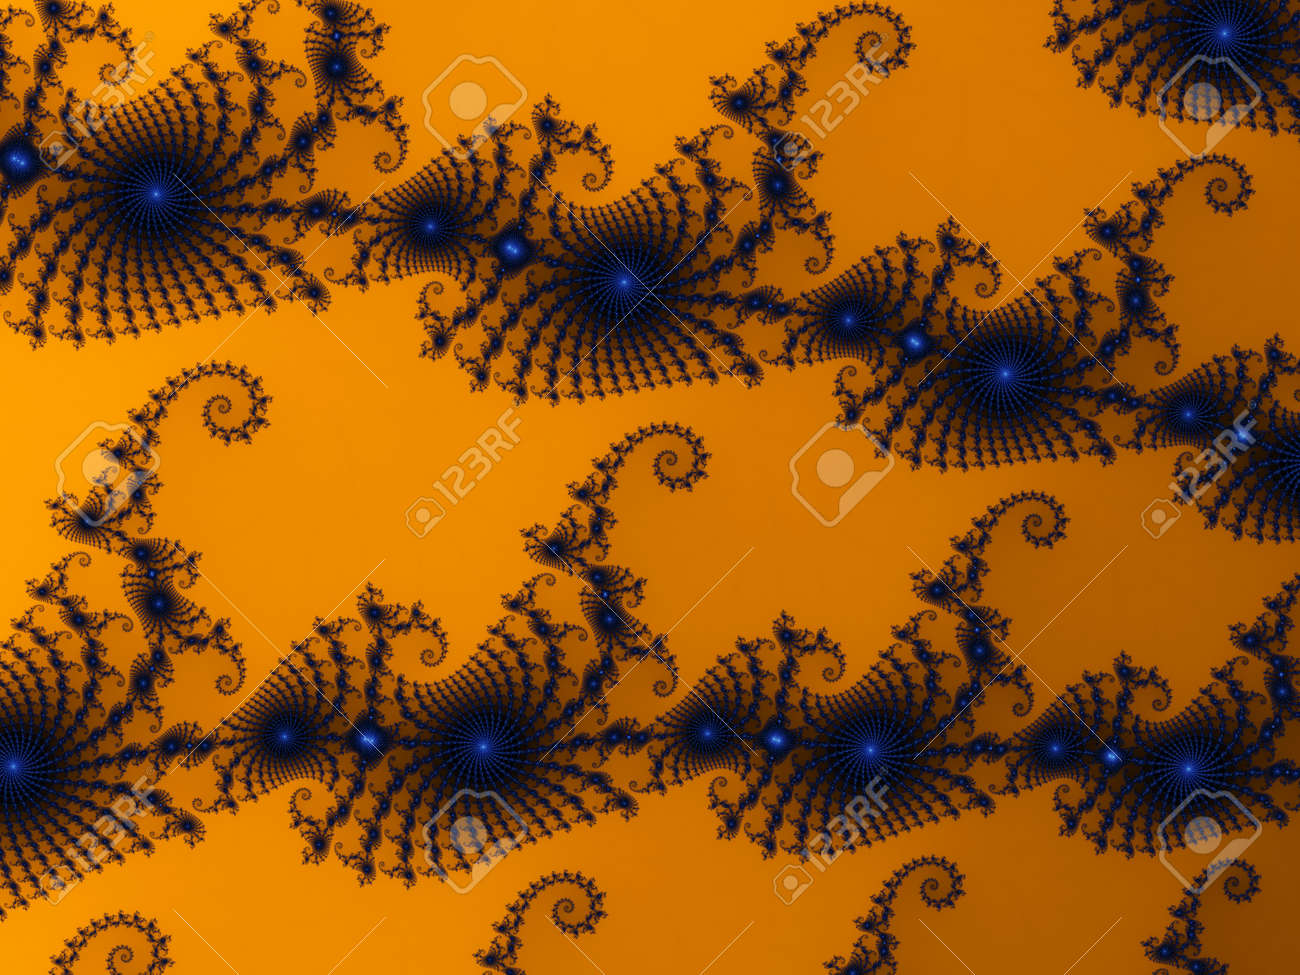 3D-Illustration of a zoom into an infinite mathematical fractal set - 169911884